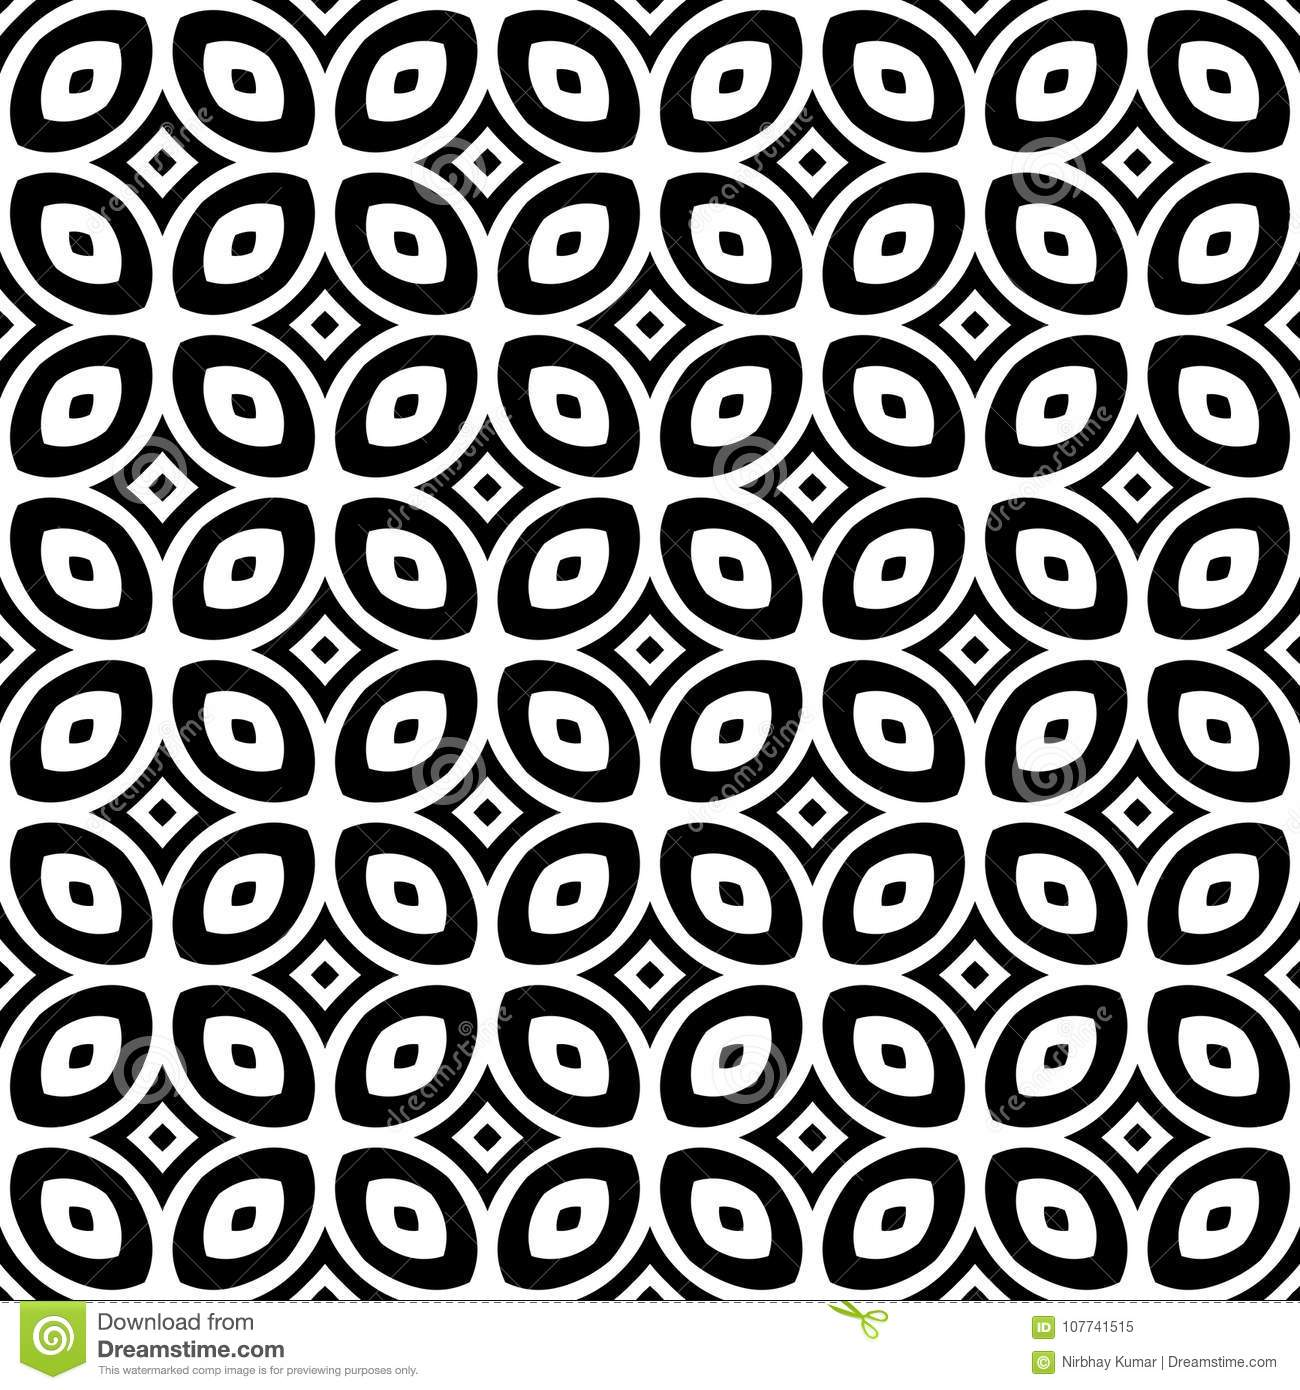 Beautiful Wallpaper Home Screen Black And White - pattern-website-background-wallpaper-screen-sever-book-cover-printing-laser-cutting-designs-vector-black-white-107741515  HD_151130.jpg